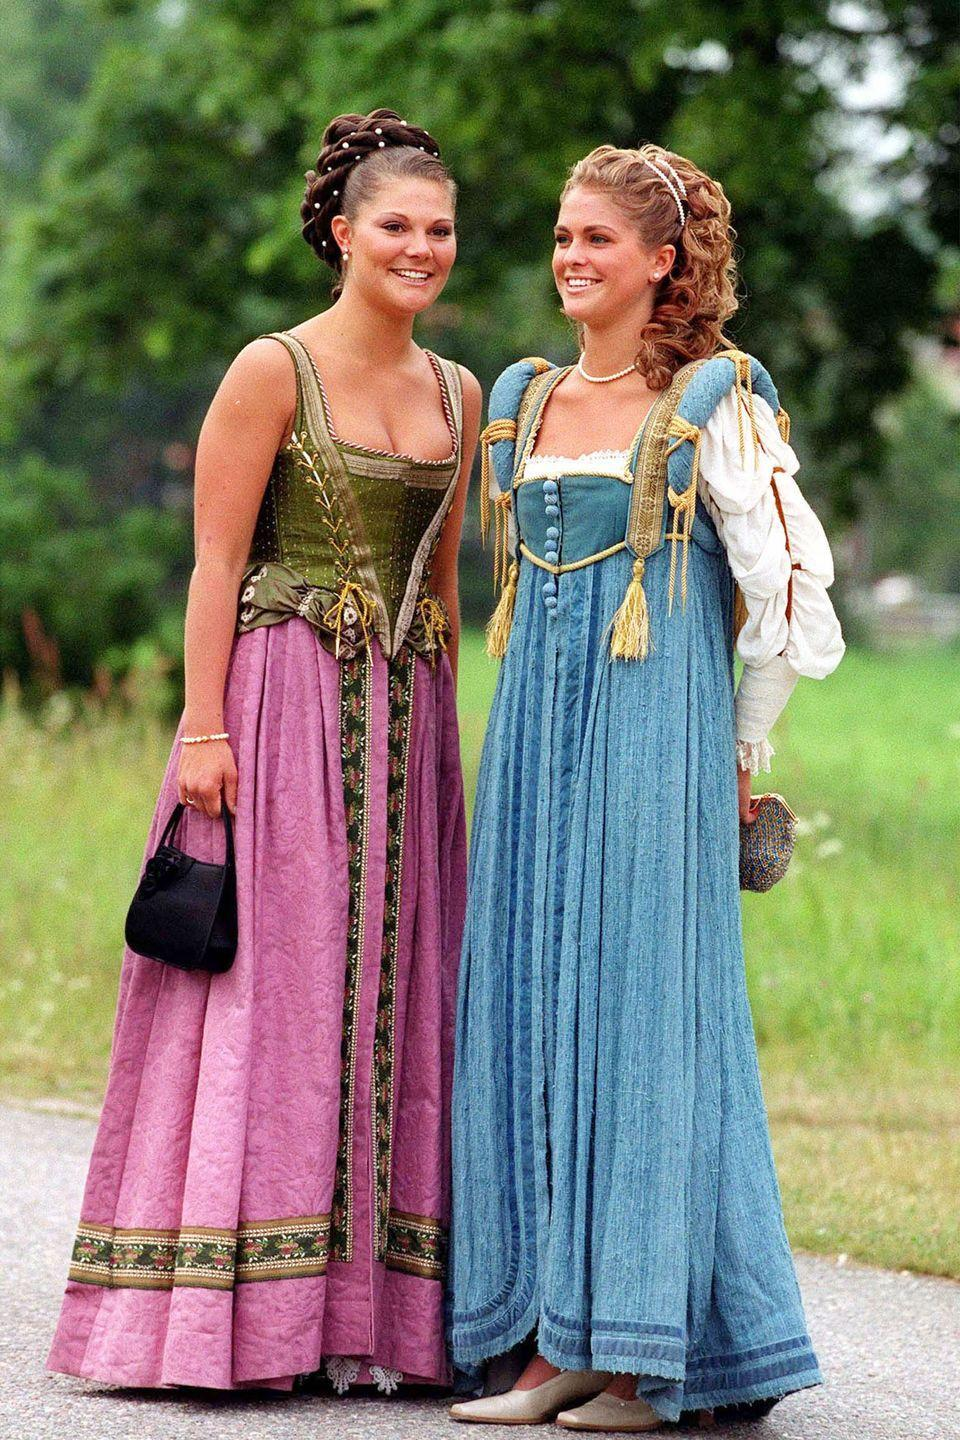 <p>Sweden's Princess Victoria and Princess Madeleine in renaissance gowns at Gripsholm Castle in Sweden.</p>